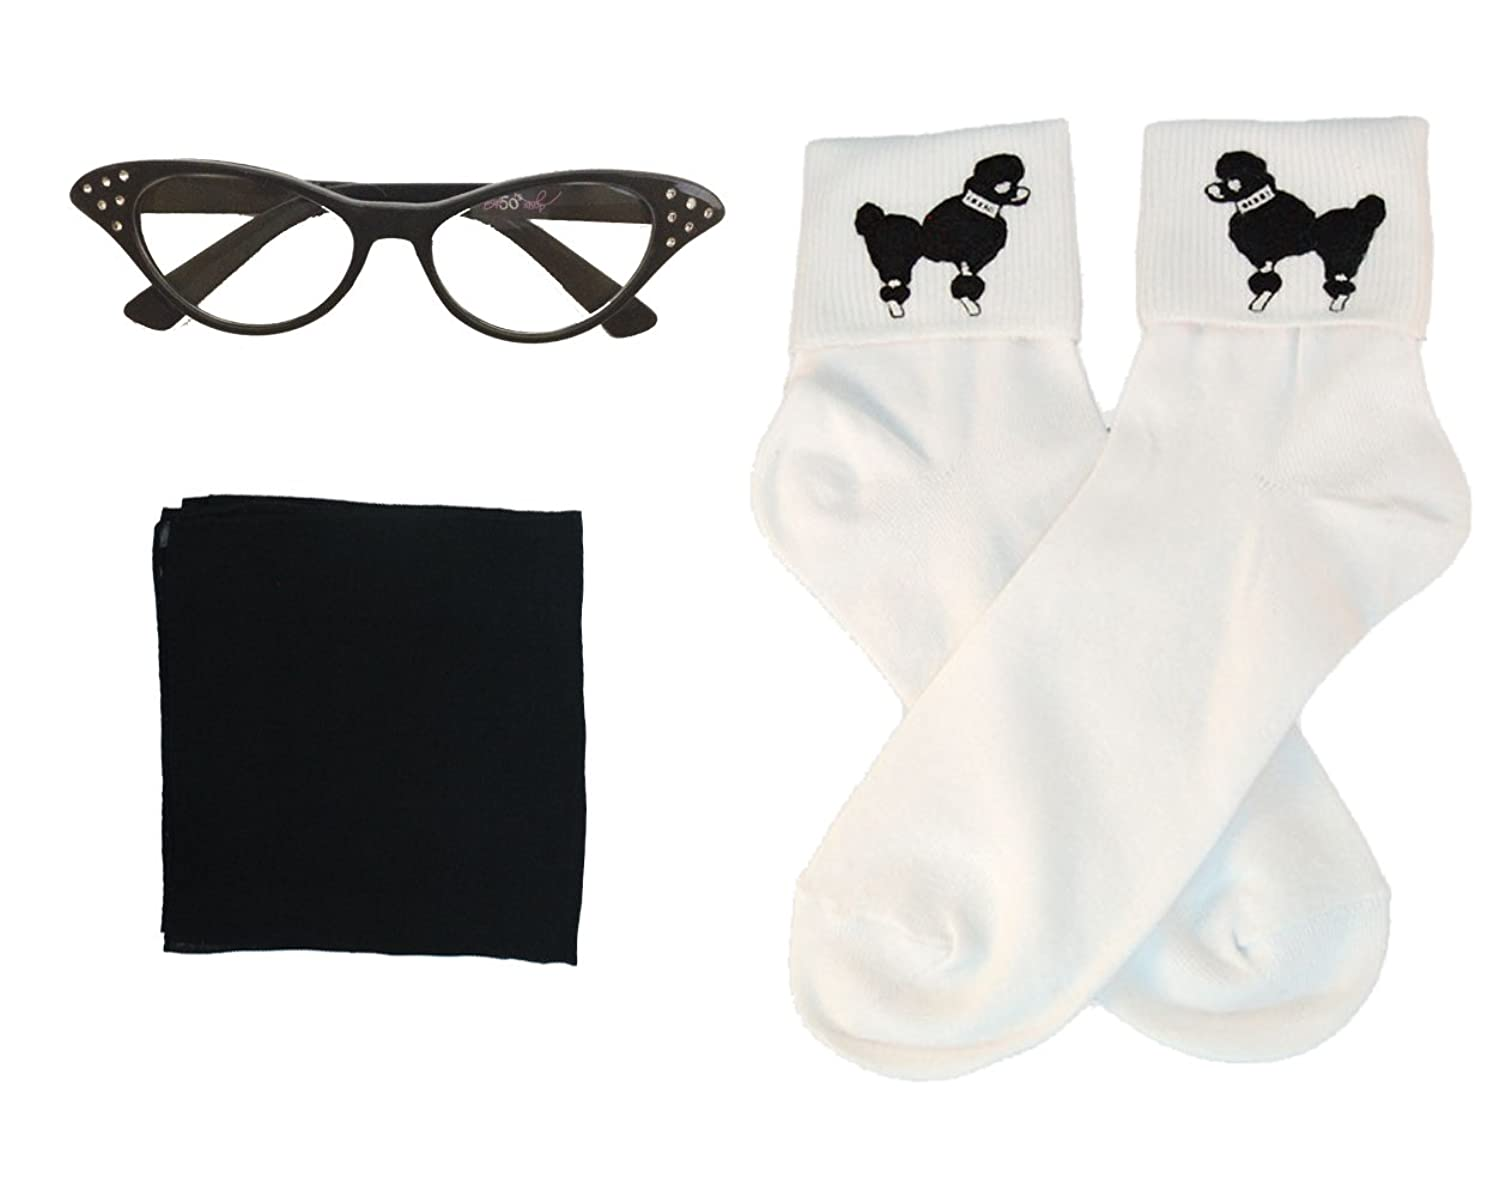 bc718e7771 Our 1950s vintage style 3 piece accessory kit comes with a comfortable and  light pair of adult Cat Eye Glasses